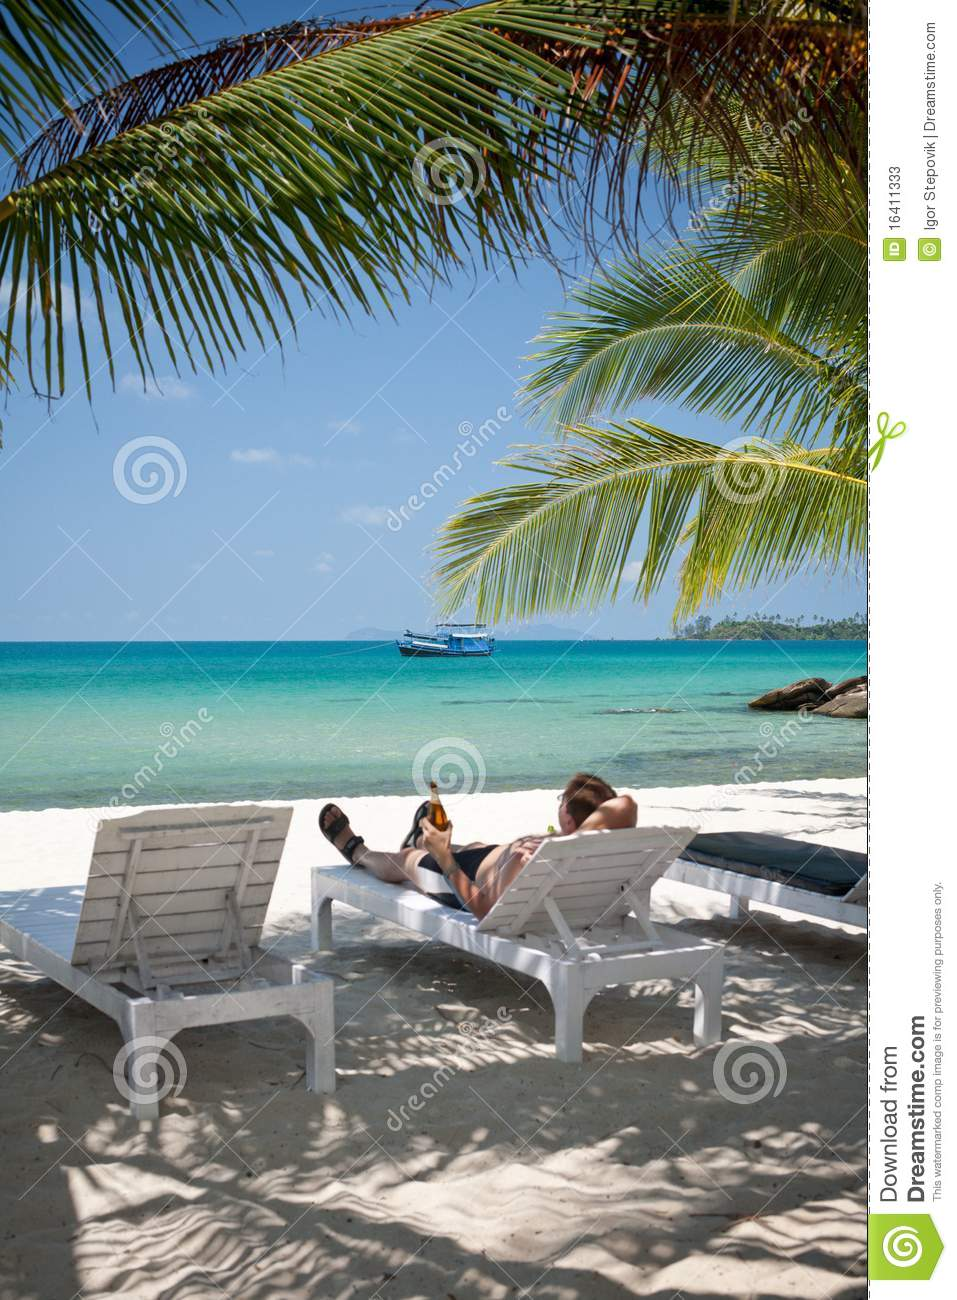 Man Relaxing With Beer In Shadows Under Palm Trees Stock